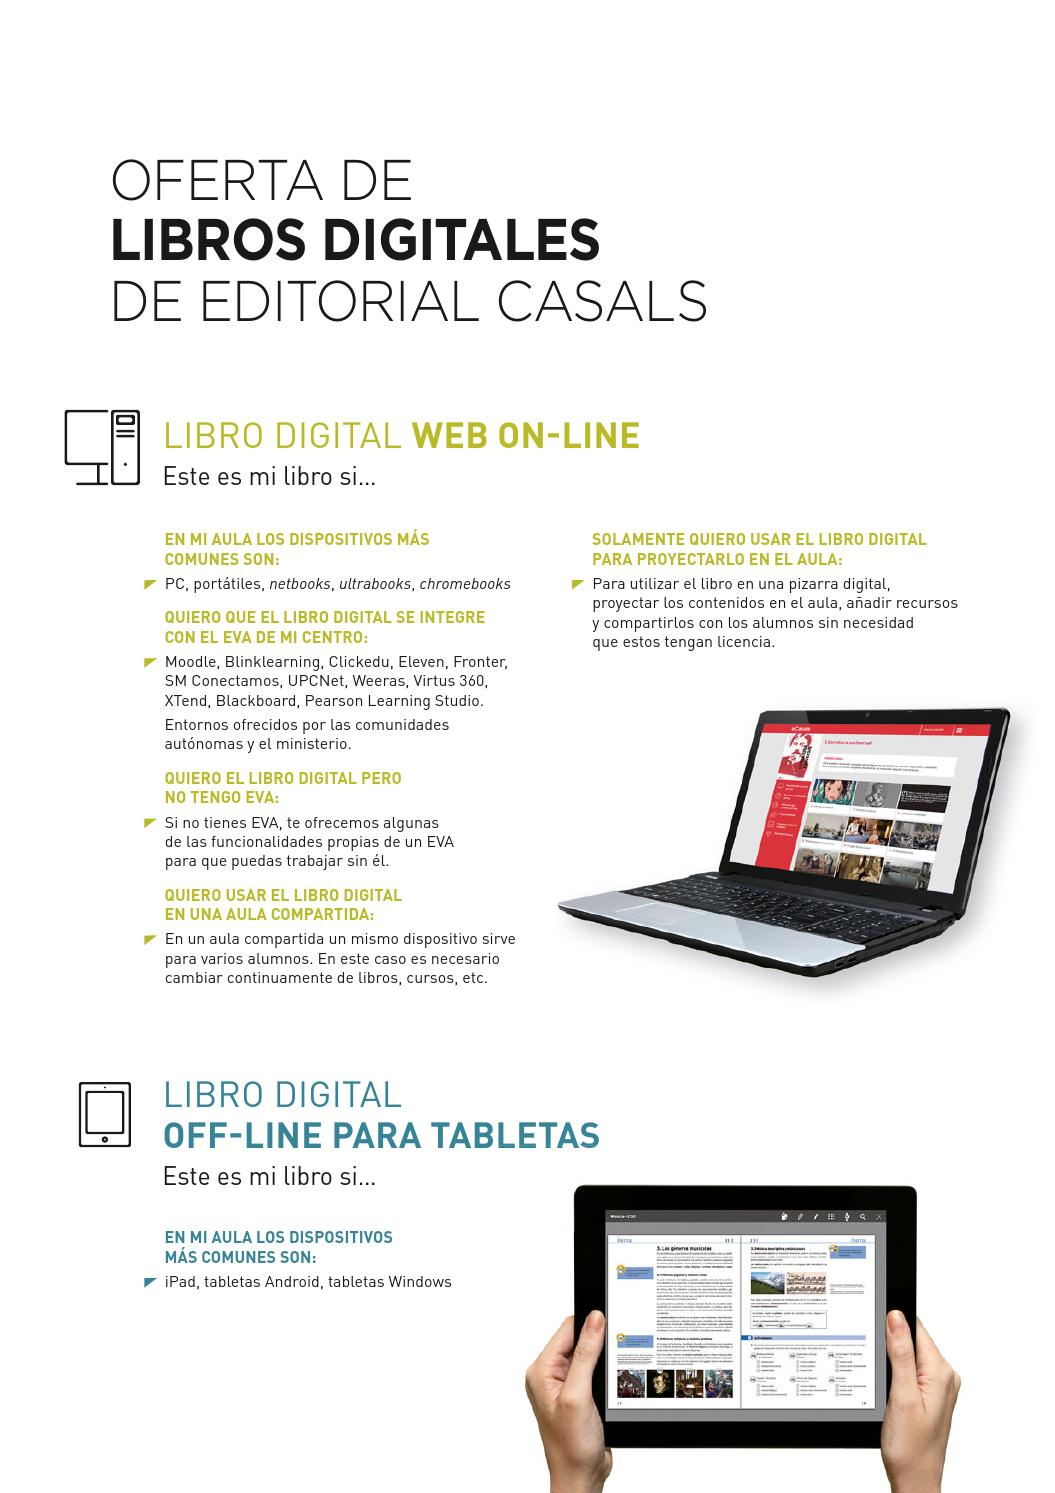 Sm Libro Digital Catálogo Digital 2015 De Editorial Casals By Editorial Casals Issuu